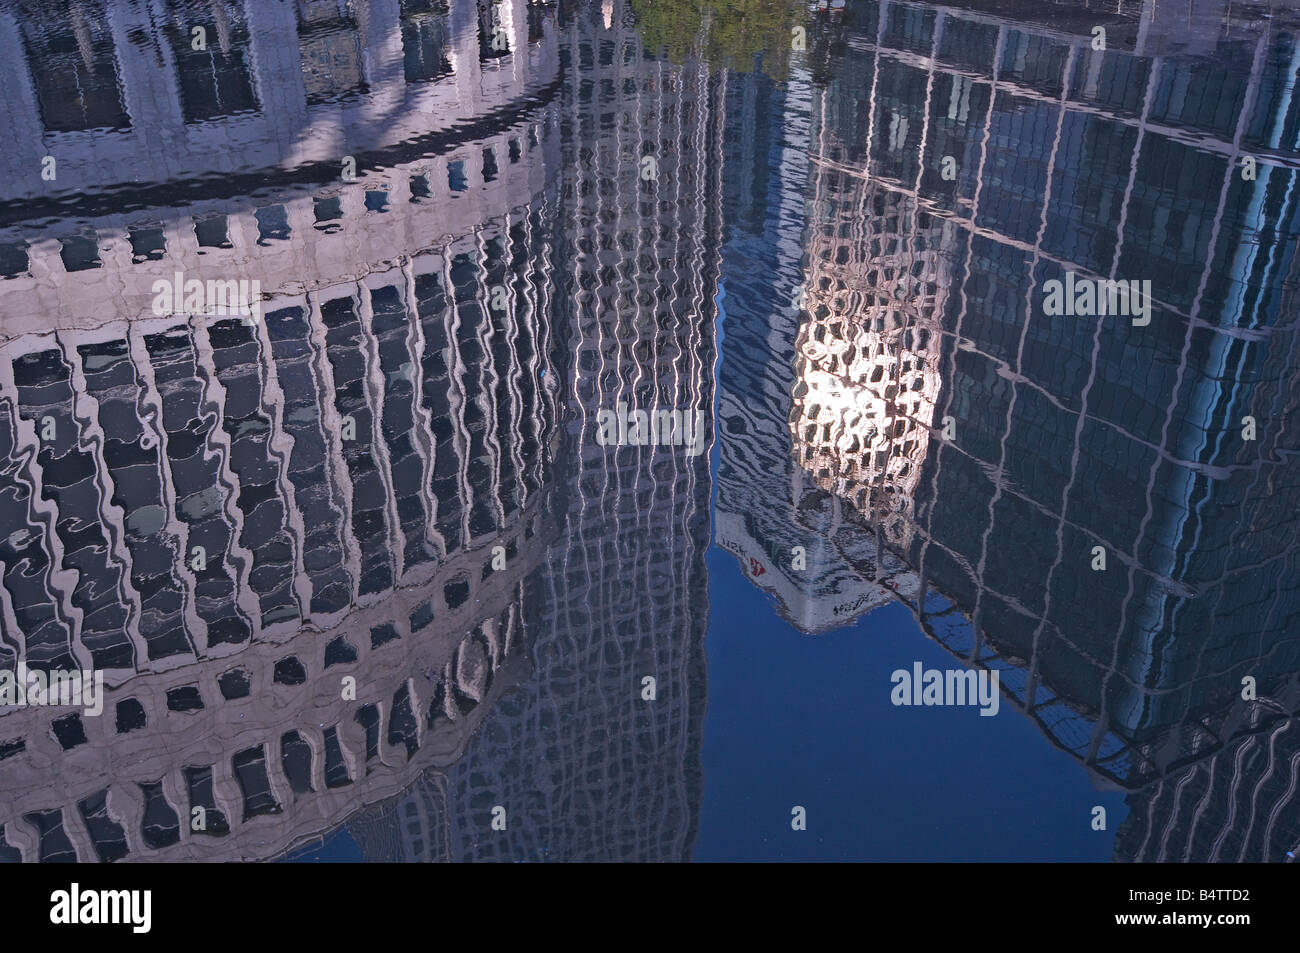 City reflections in Canary Wharf - Stock Image